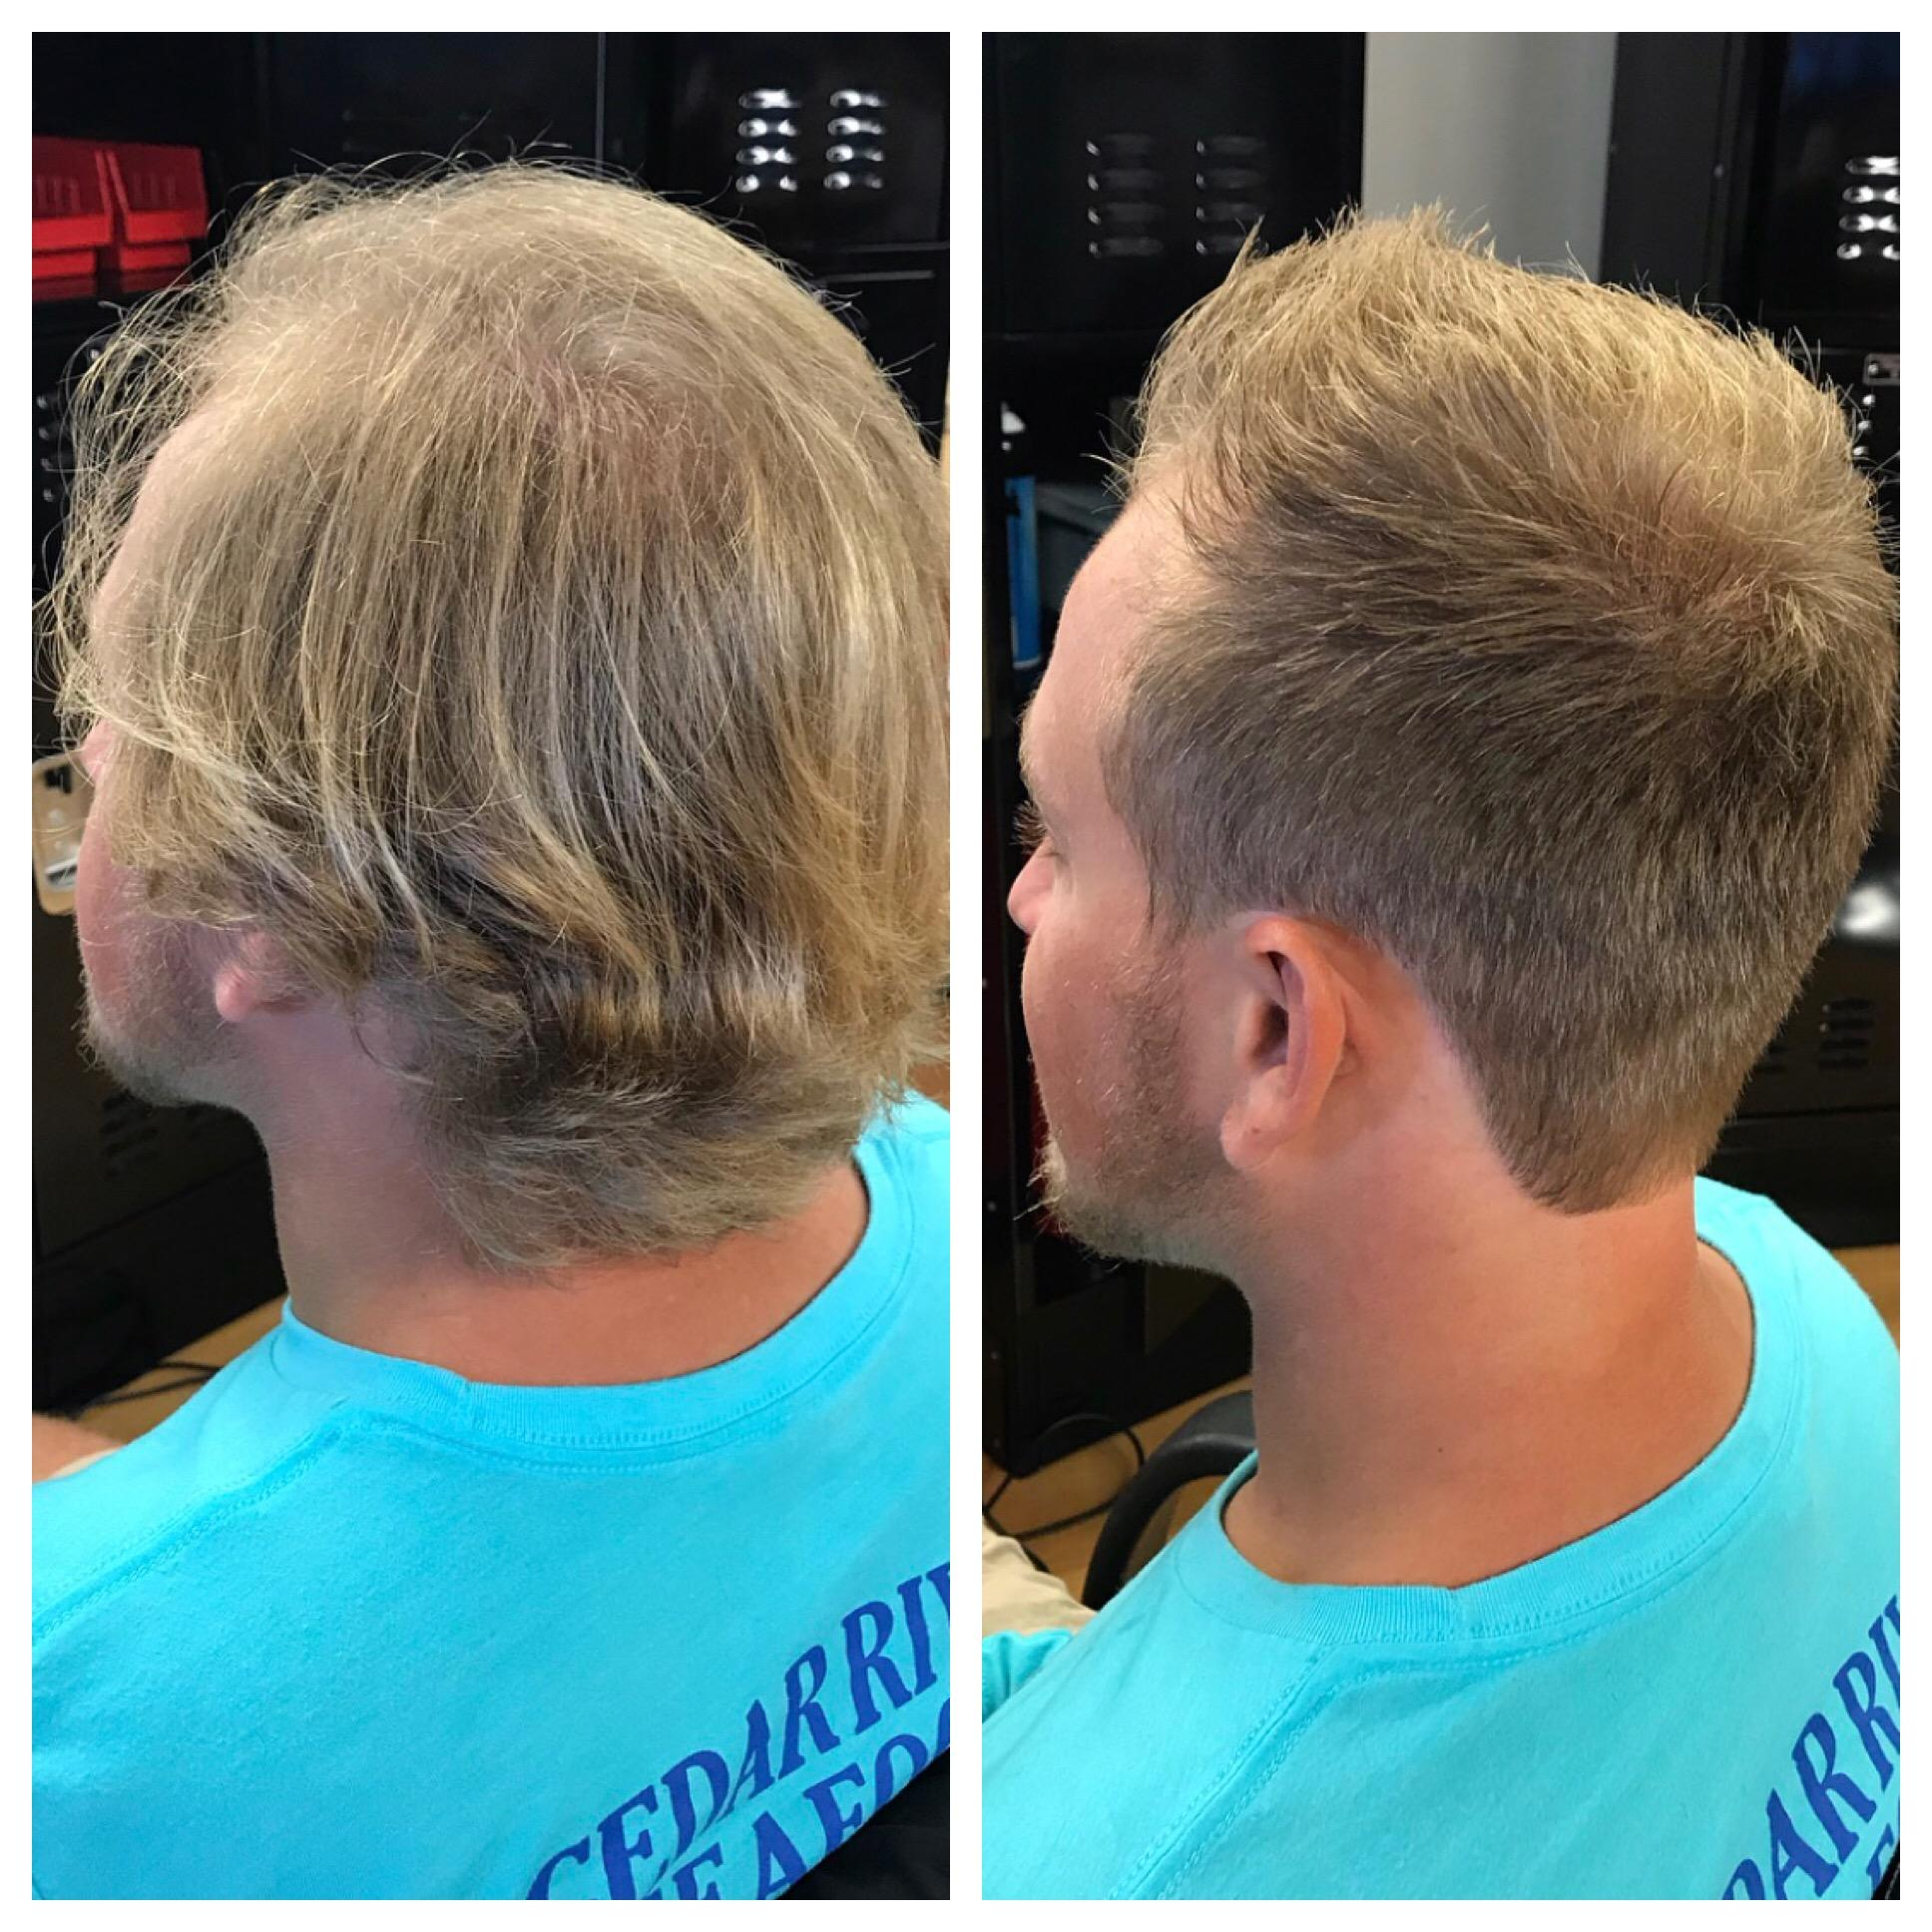 Sport Clips Haircuts of New Port Richey image 5